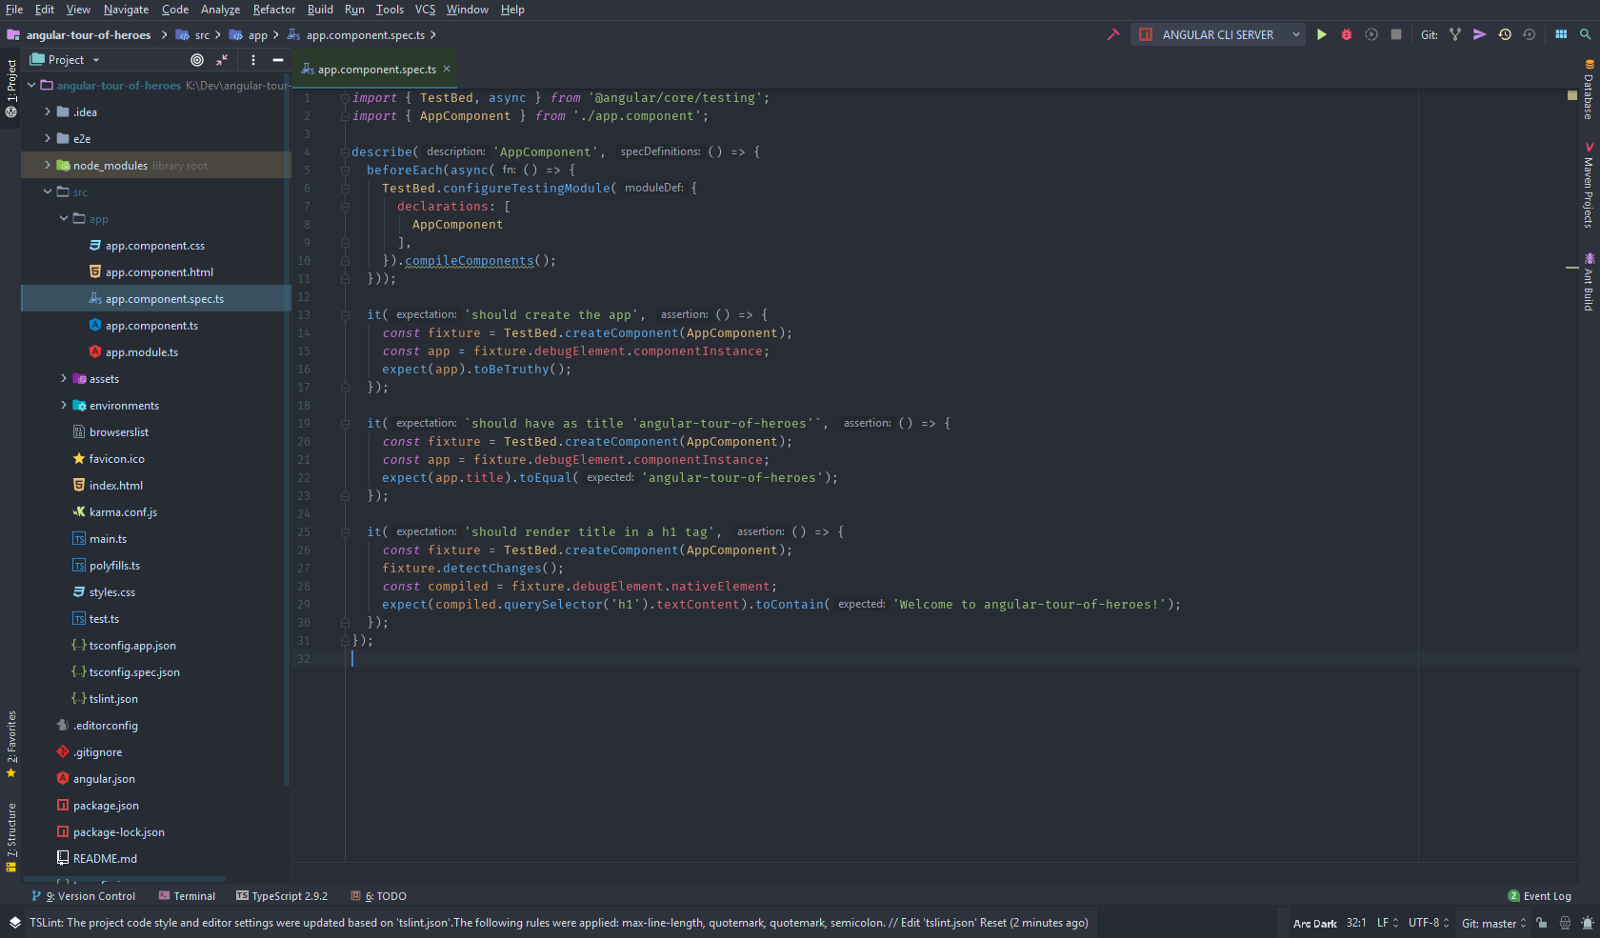 intellij material theme